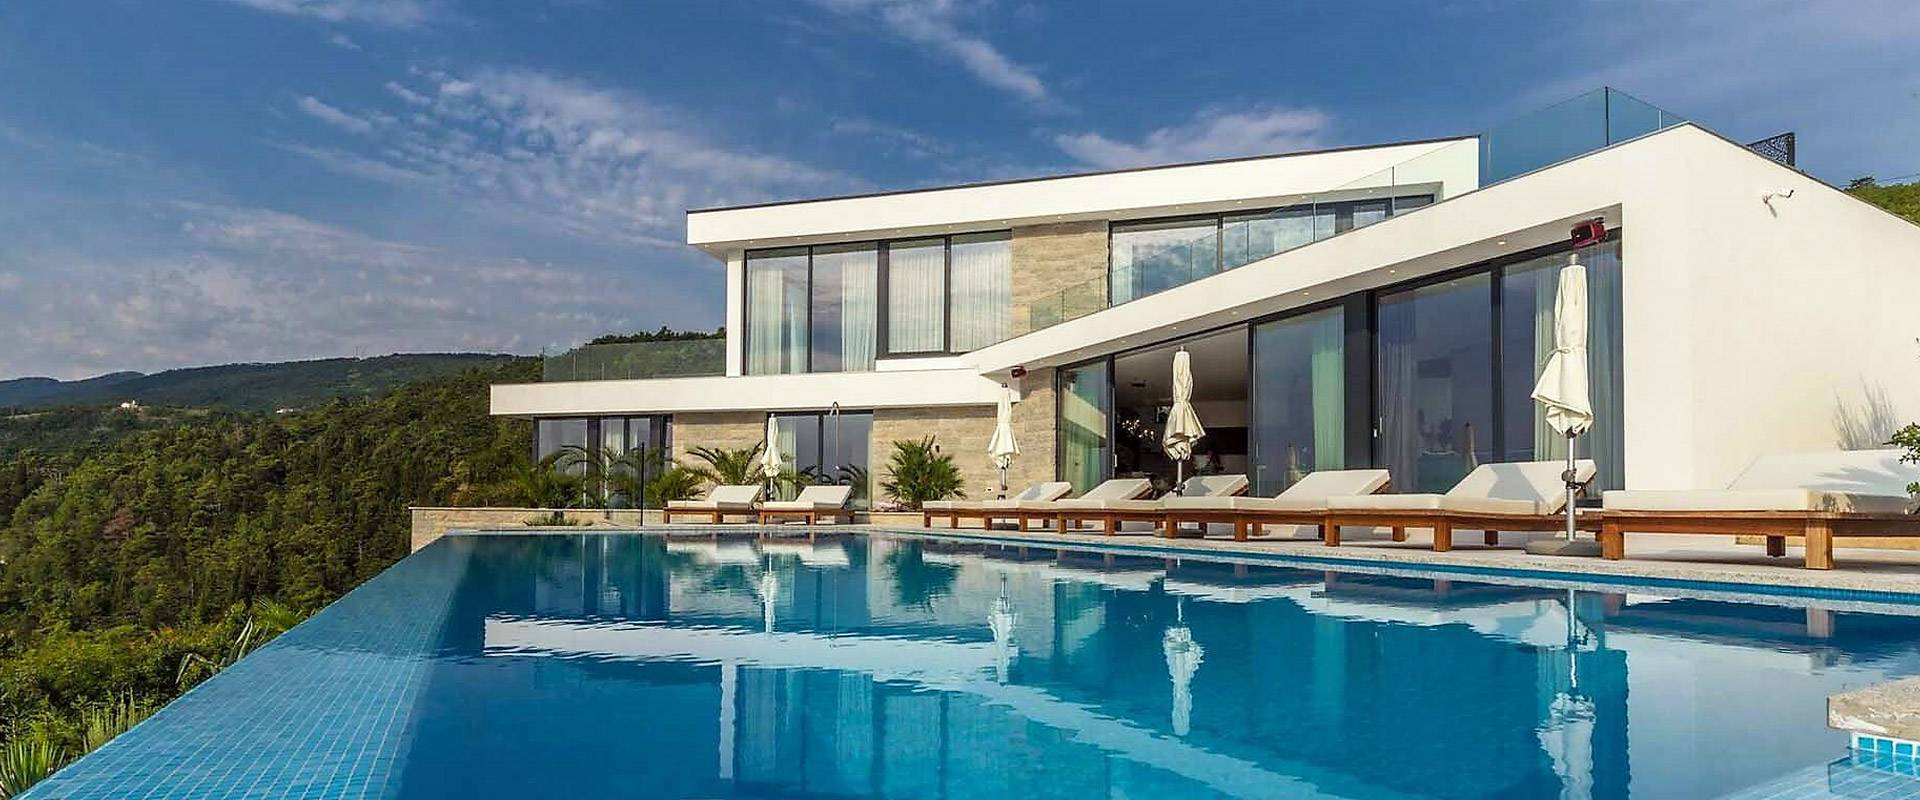 Luxury Heavens Villa Ginger Croatia 3